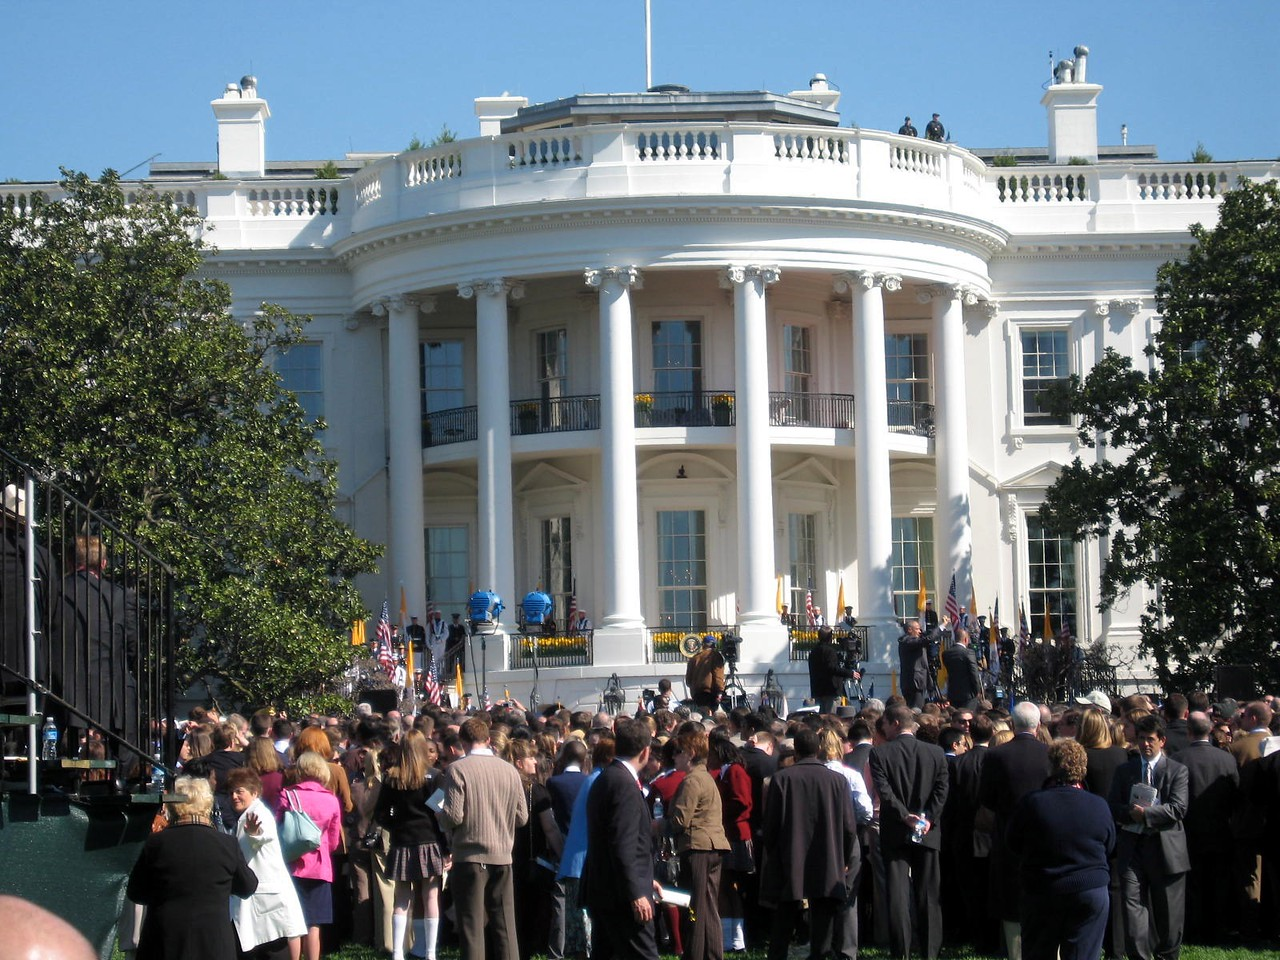 A crowd of over 13,000 gathers on the South Lawn of the White House for the State Arrival Ceremony for Pope Benedict XVI